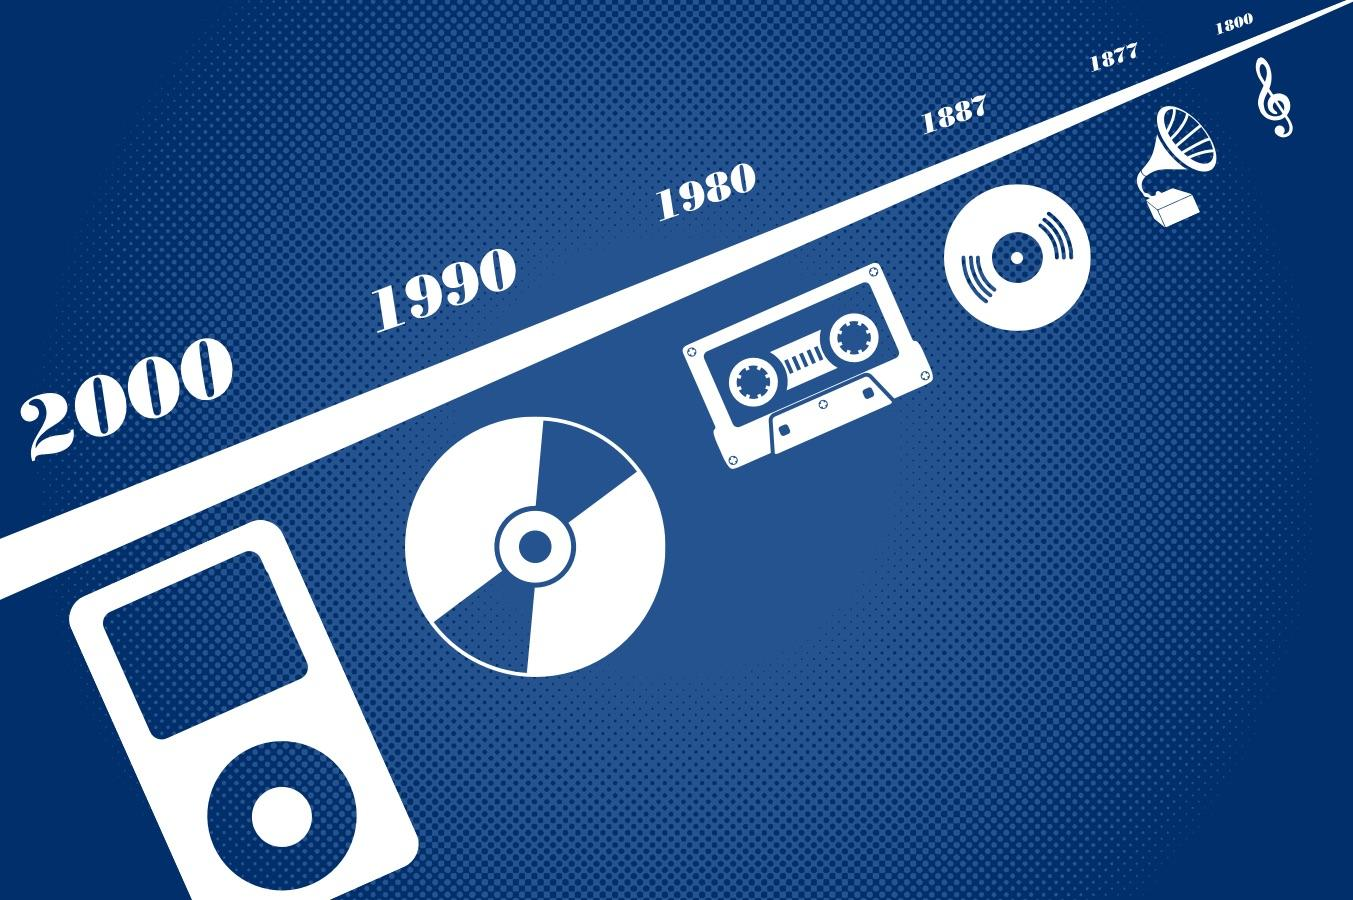 Anatomy Of The Perfect Song An Abridged History Of Manufactured